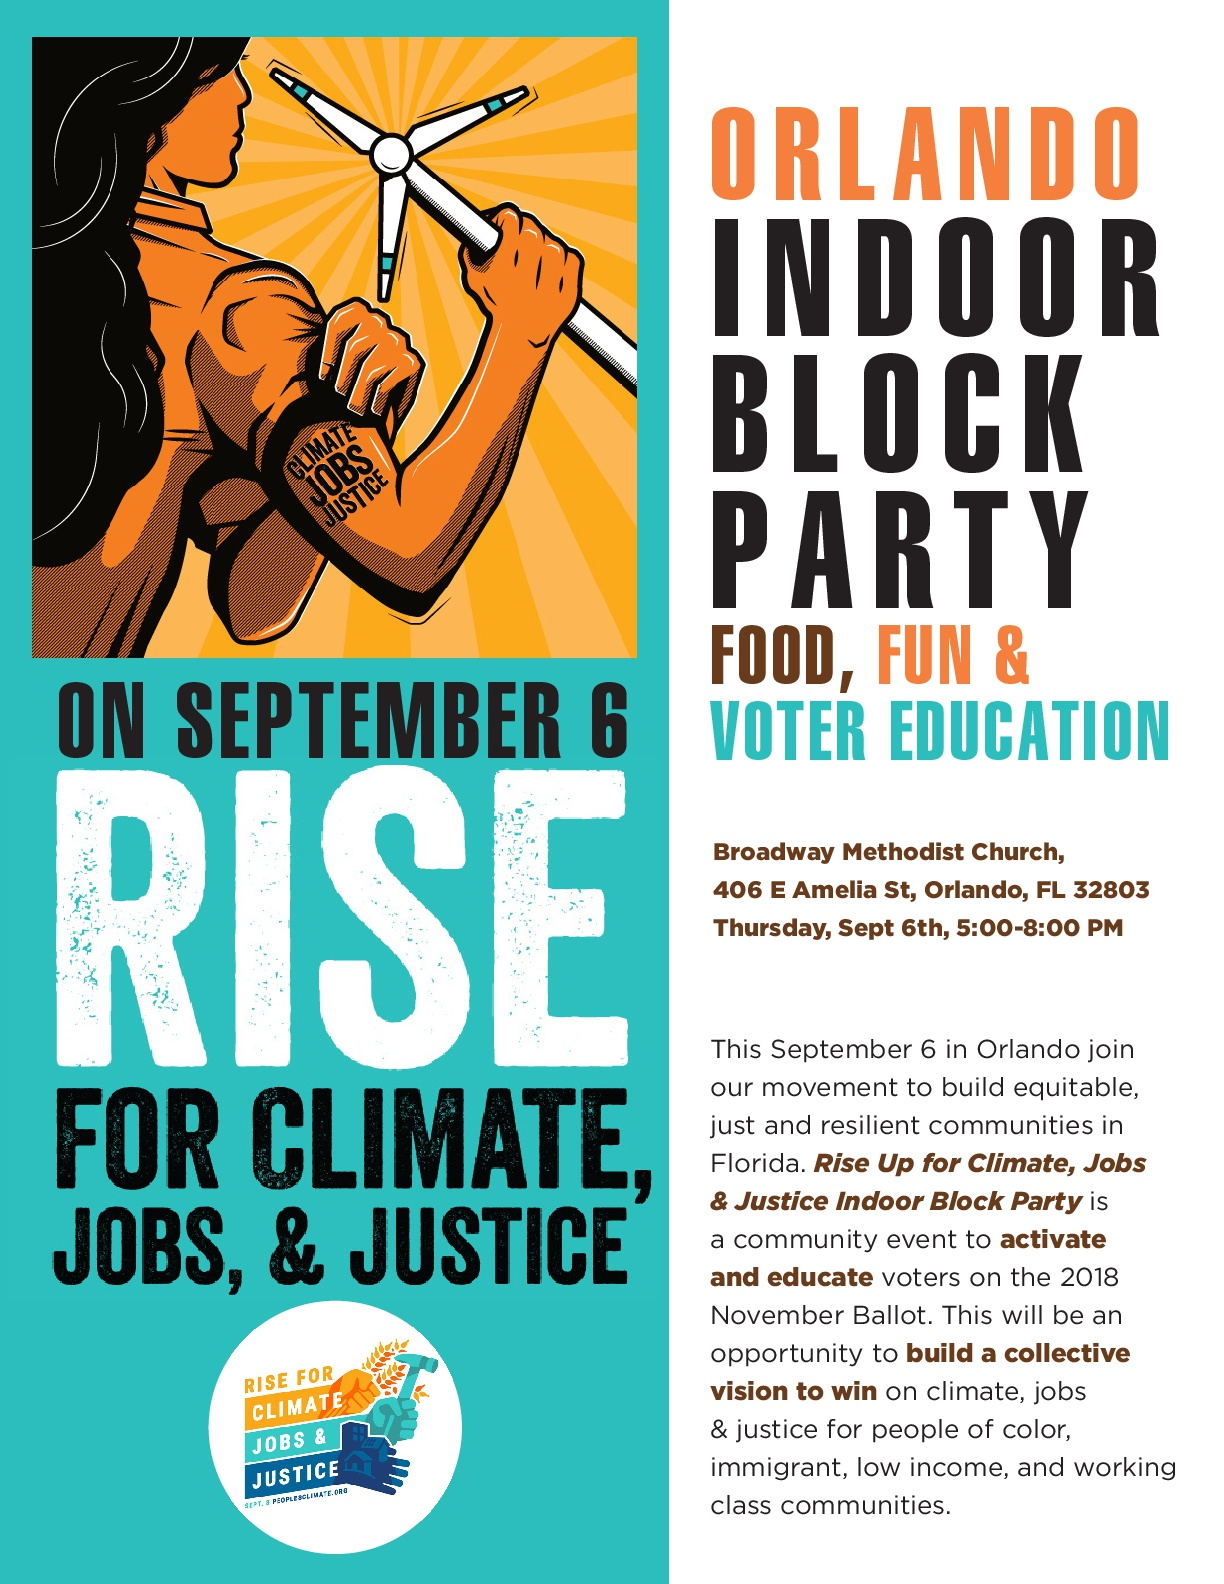 Rise-up-block-party-flyer-8-18-orlando-001